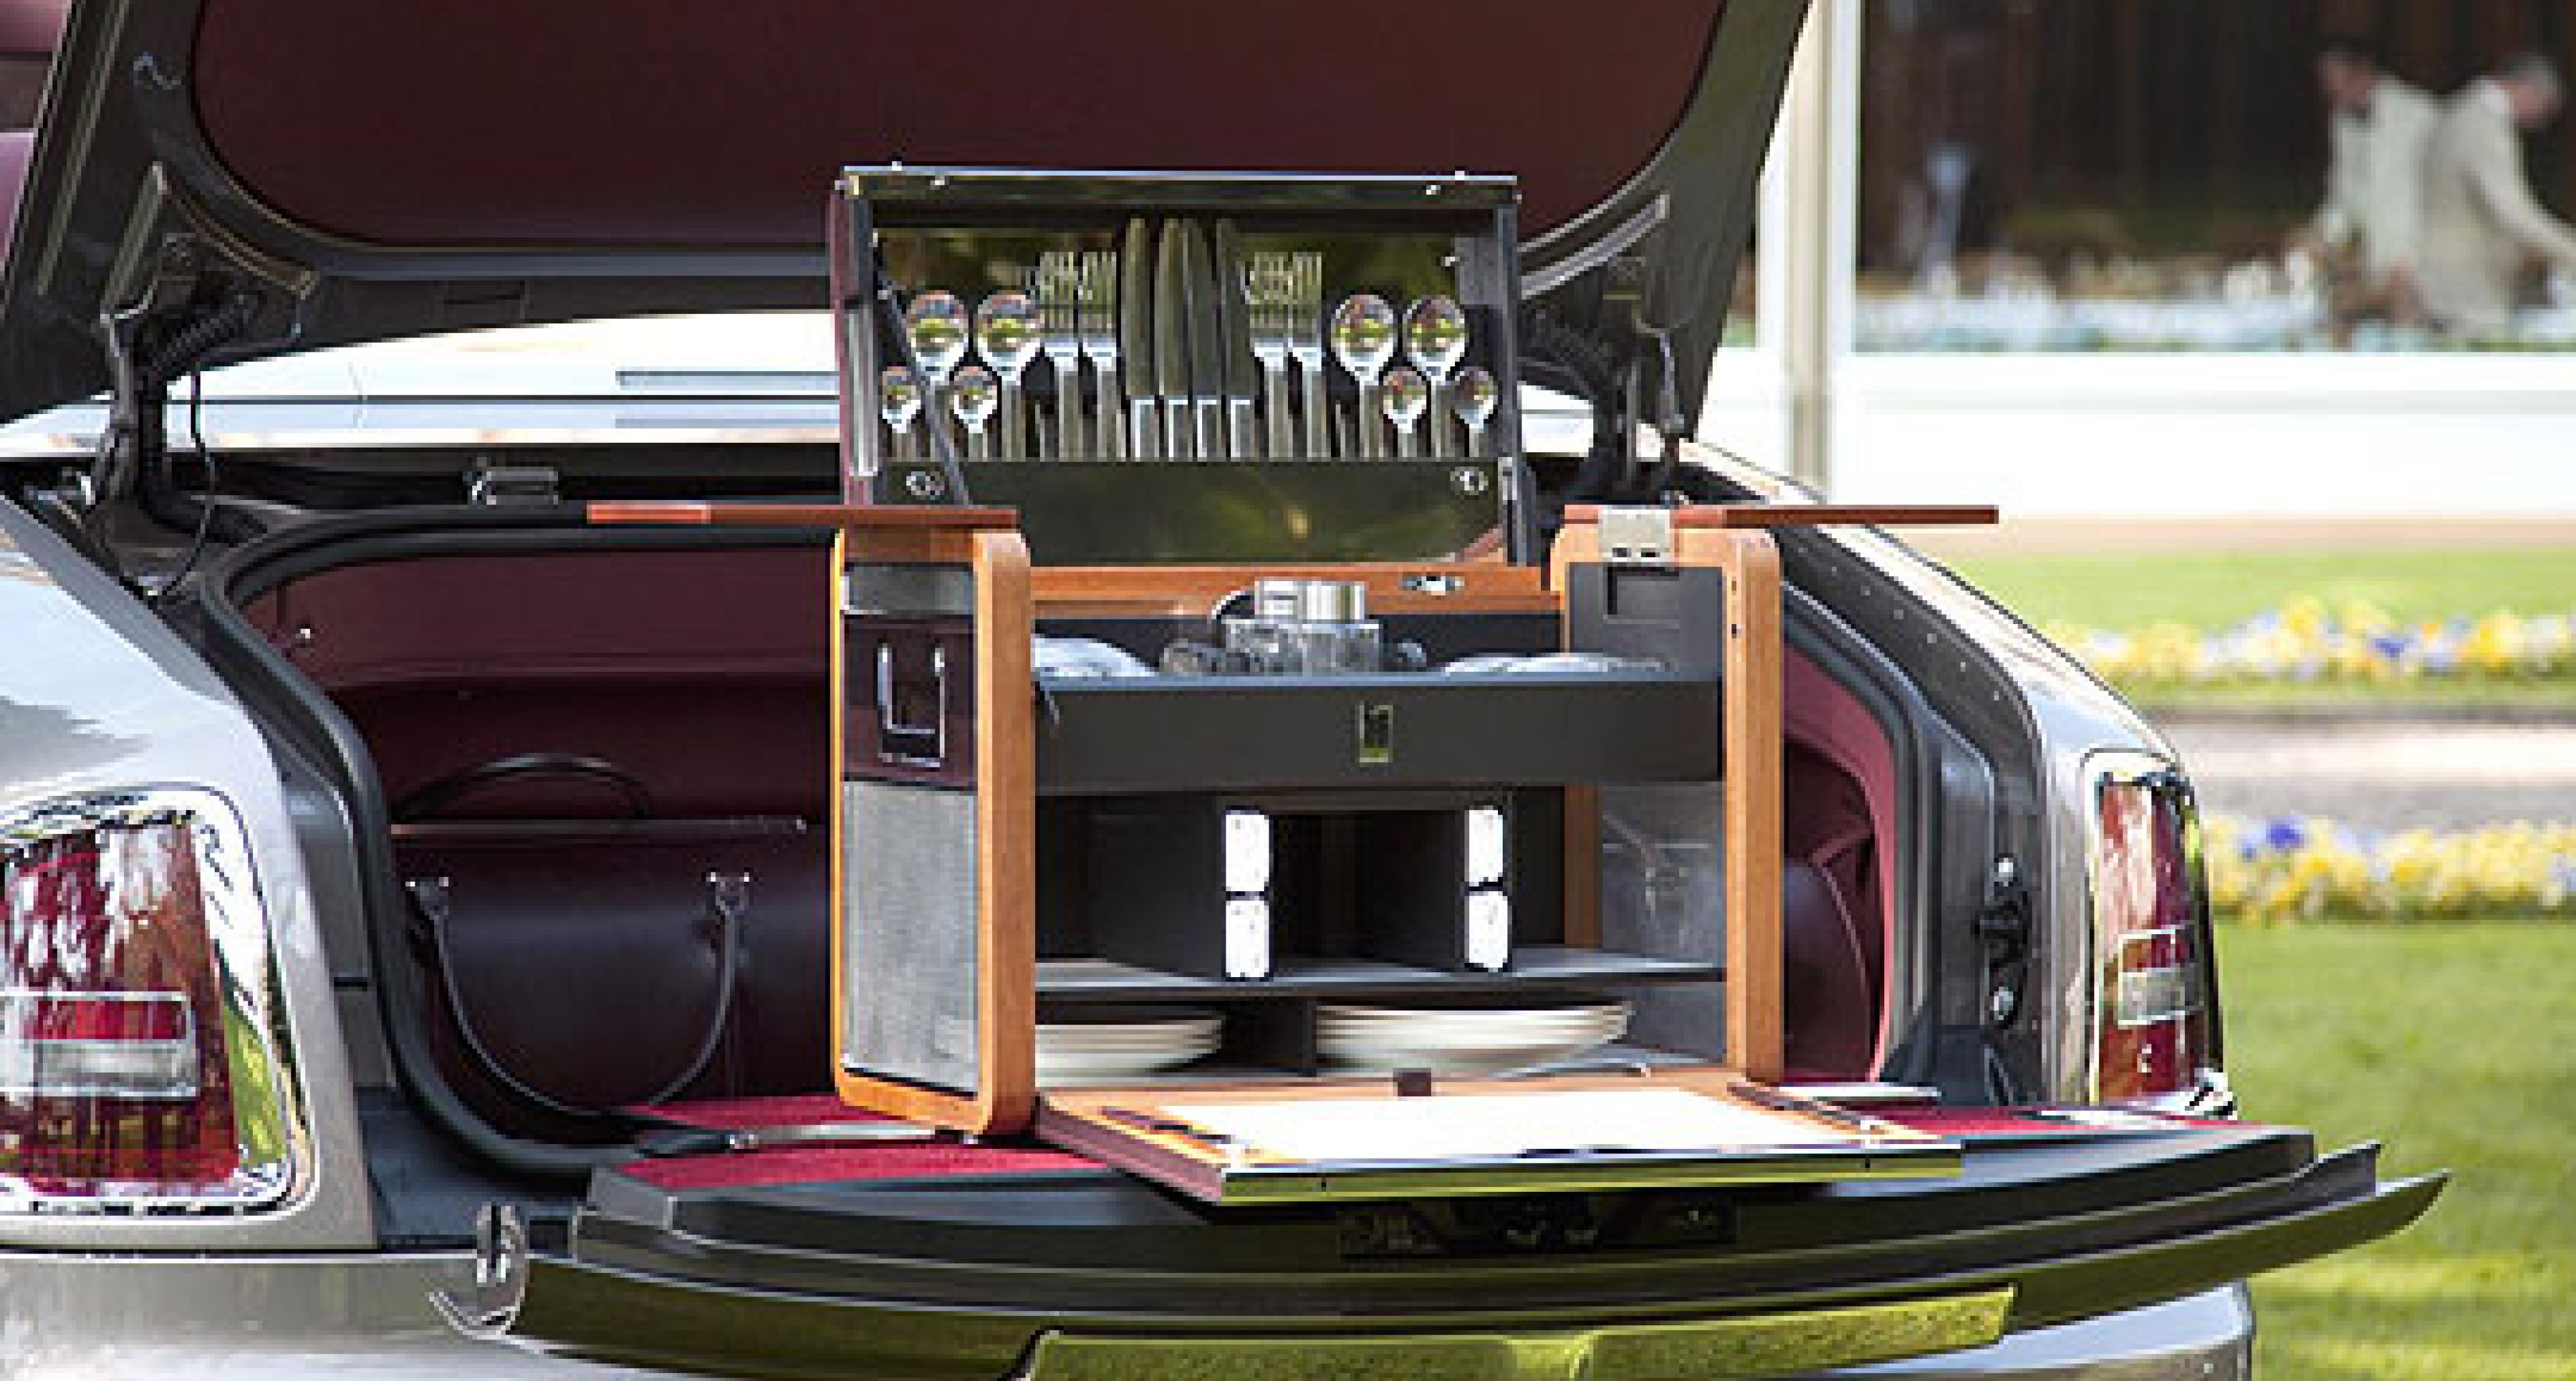 Rolls-Royce Picnic Set: Dine Out in Style